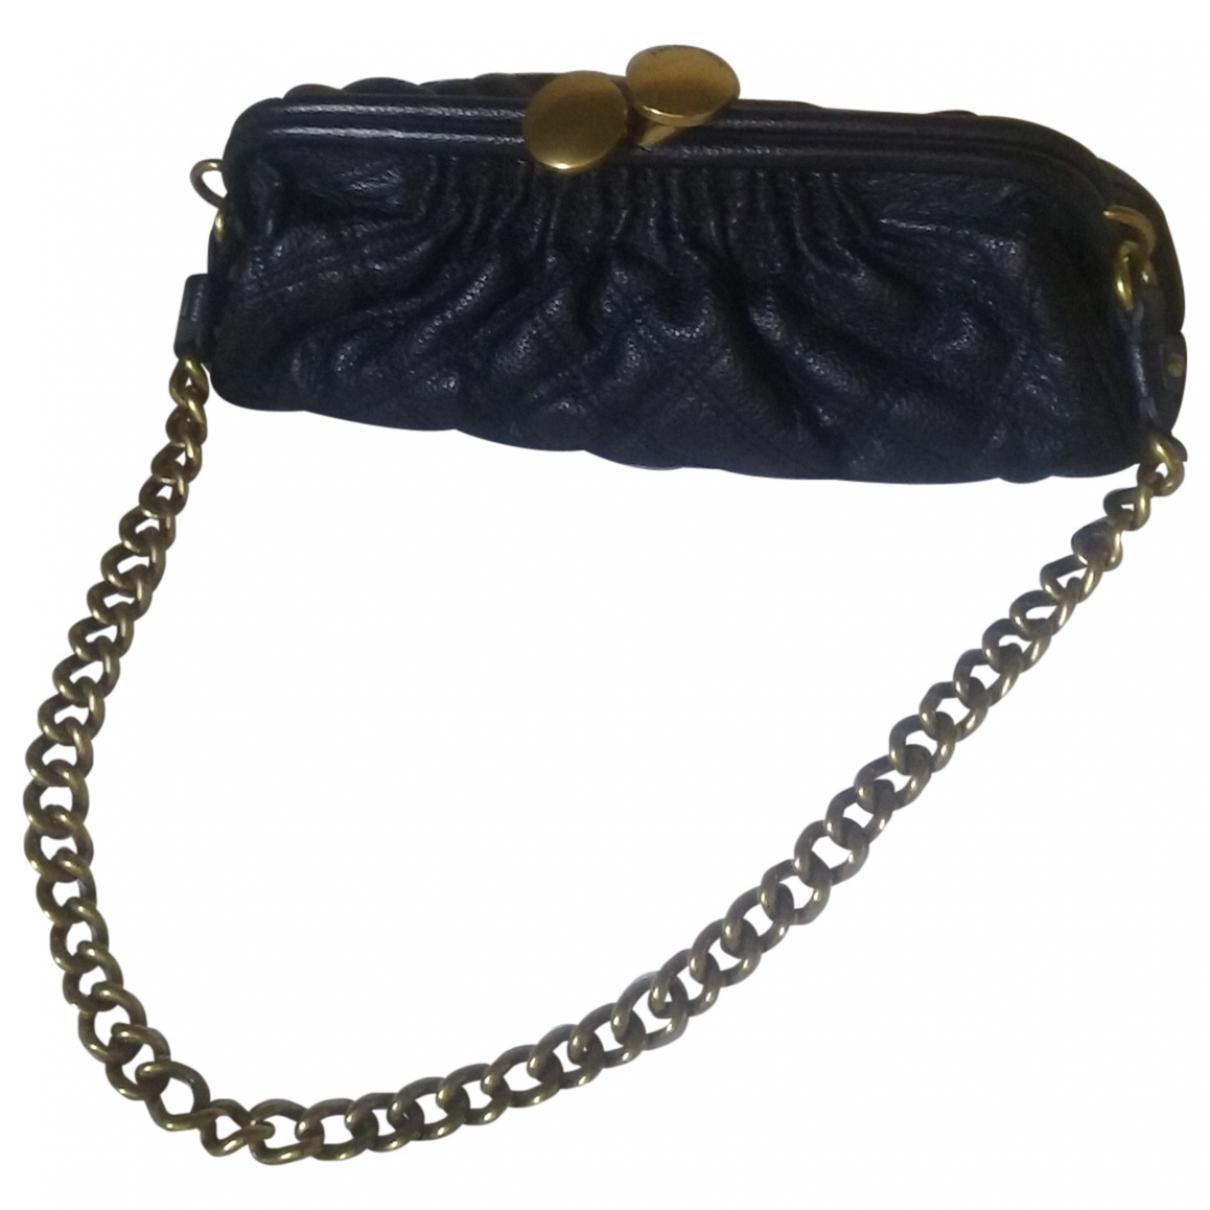 Marc Jacobs Pre-owned - Black Leather Clutch bag ypvnyie